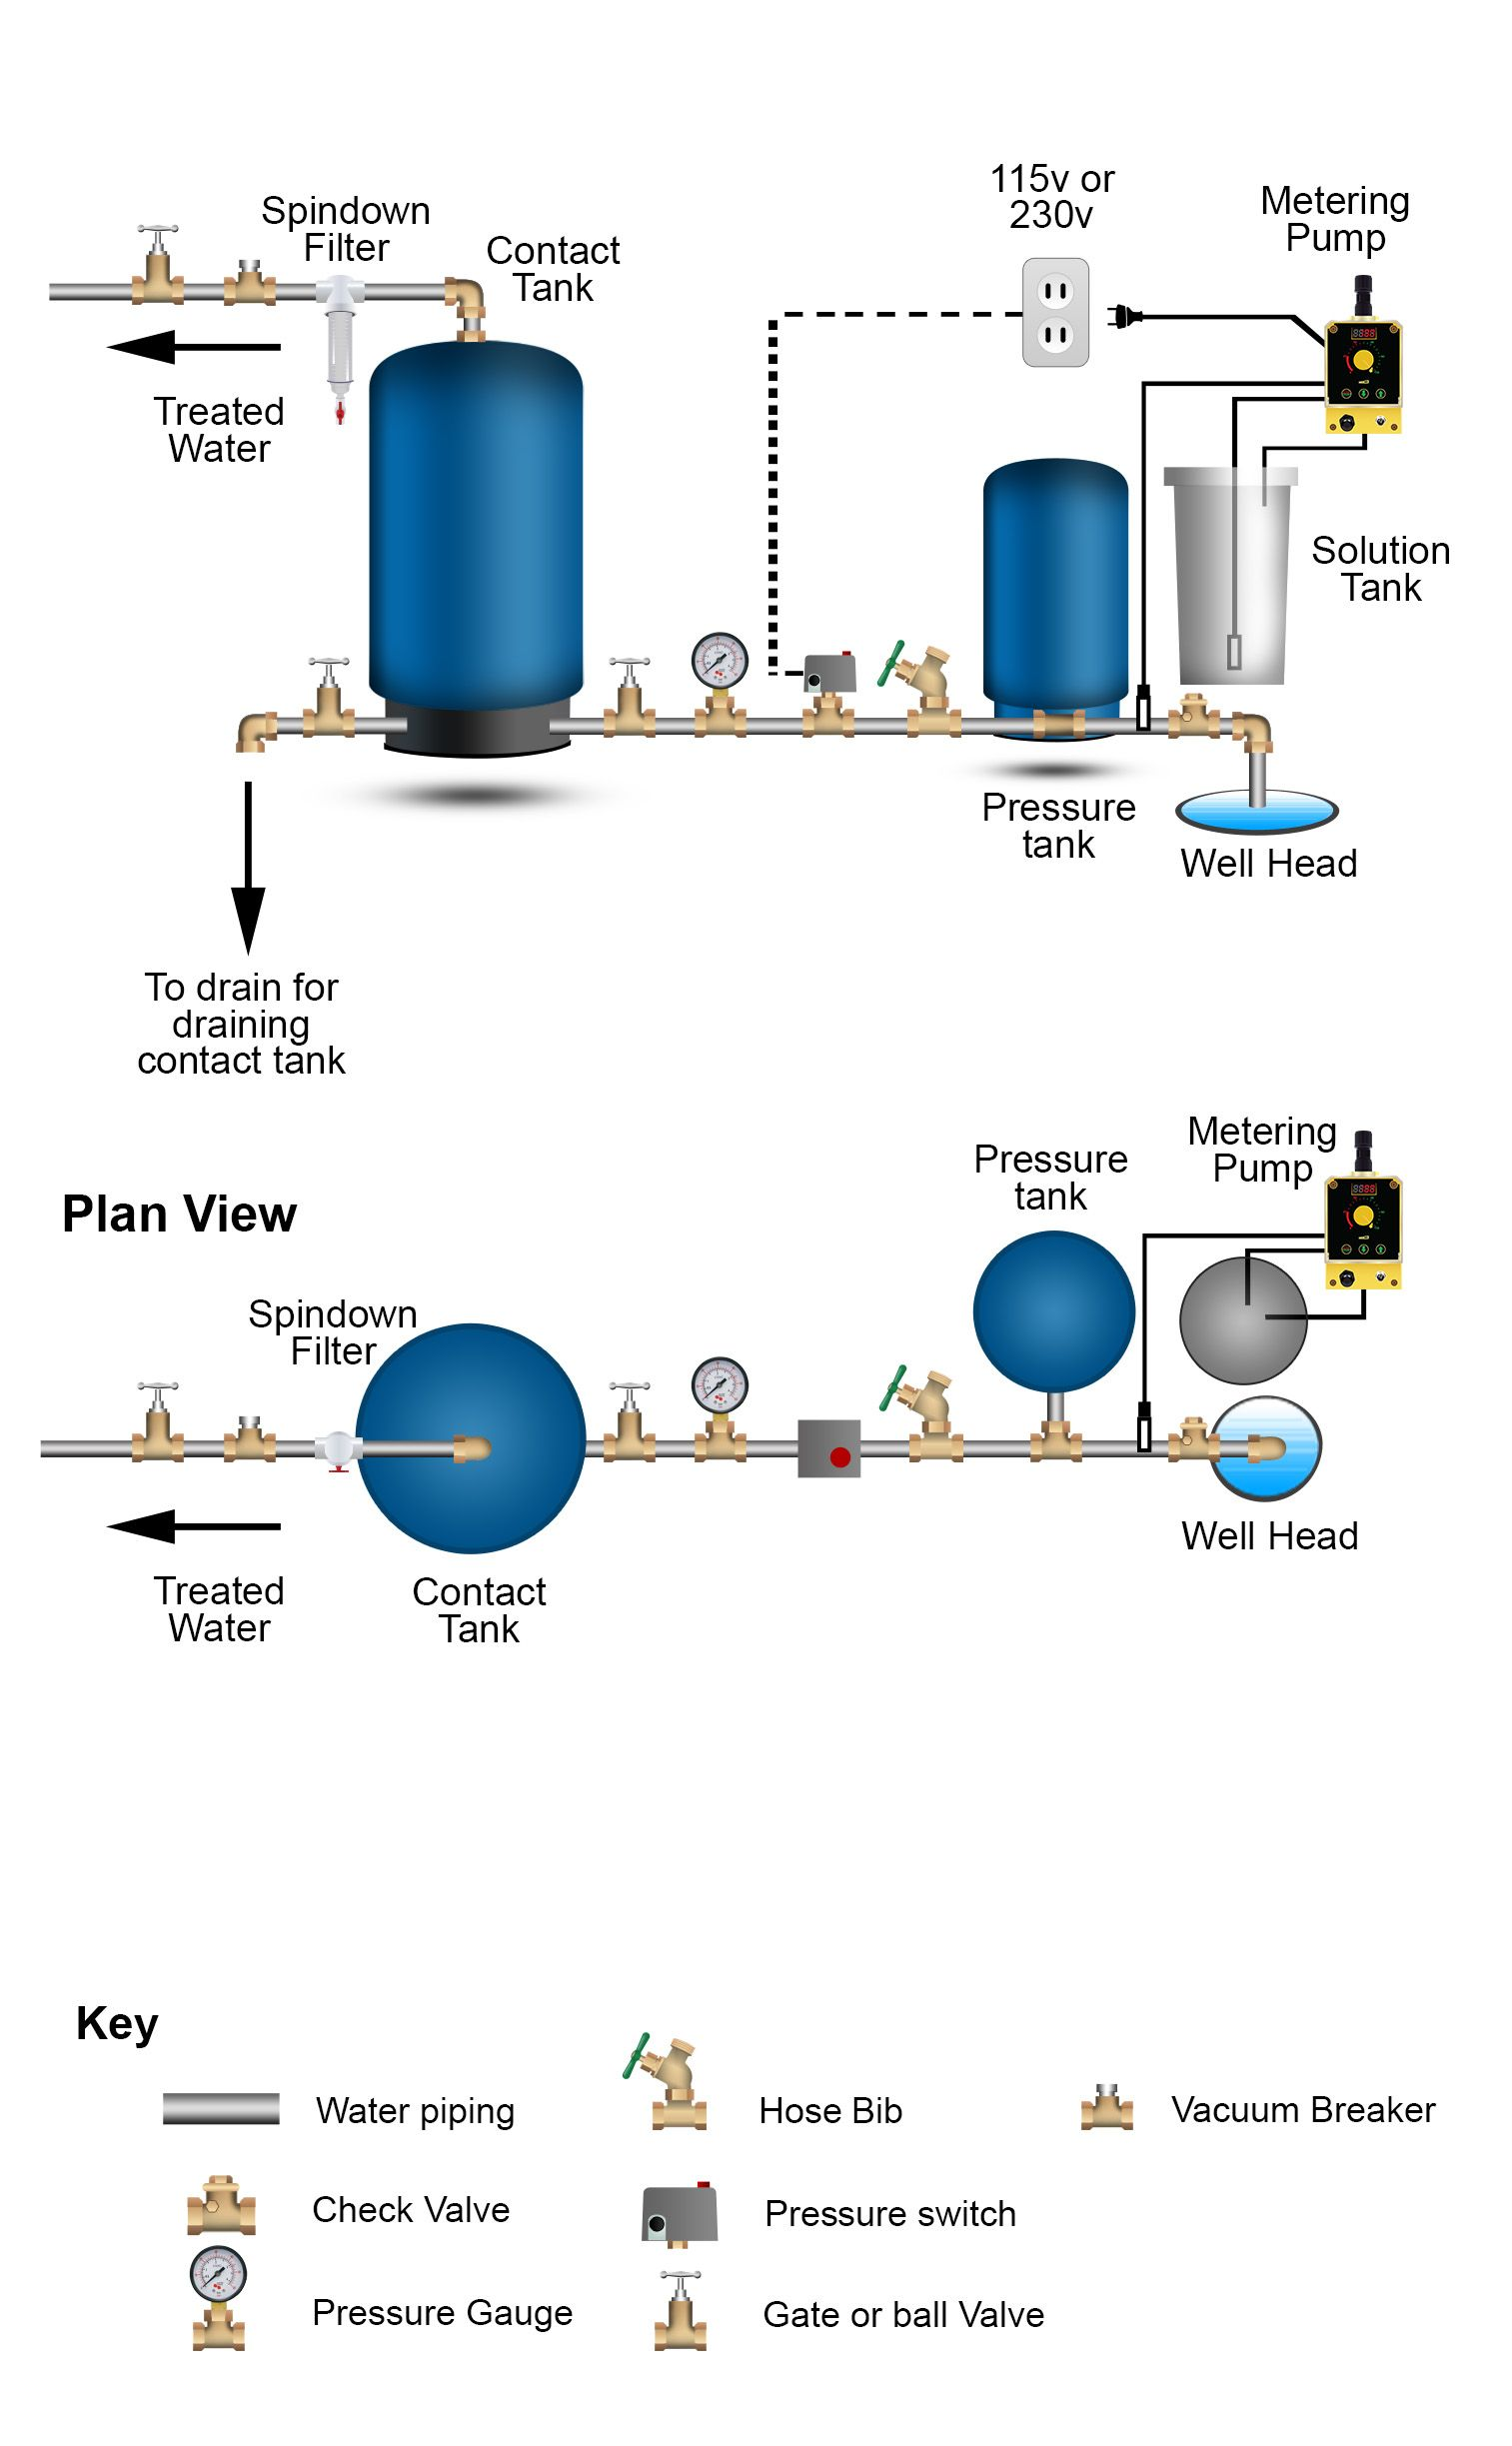 how to treat sulfur odors in well water residential well water treatment iron filters acid neutralizers chlorinators [ 1513 x 2447 Pixel ]